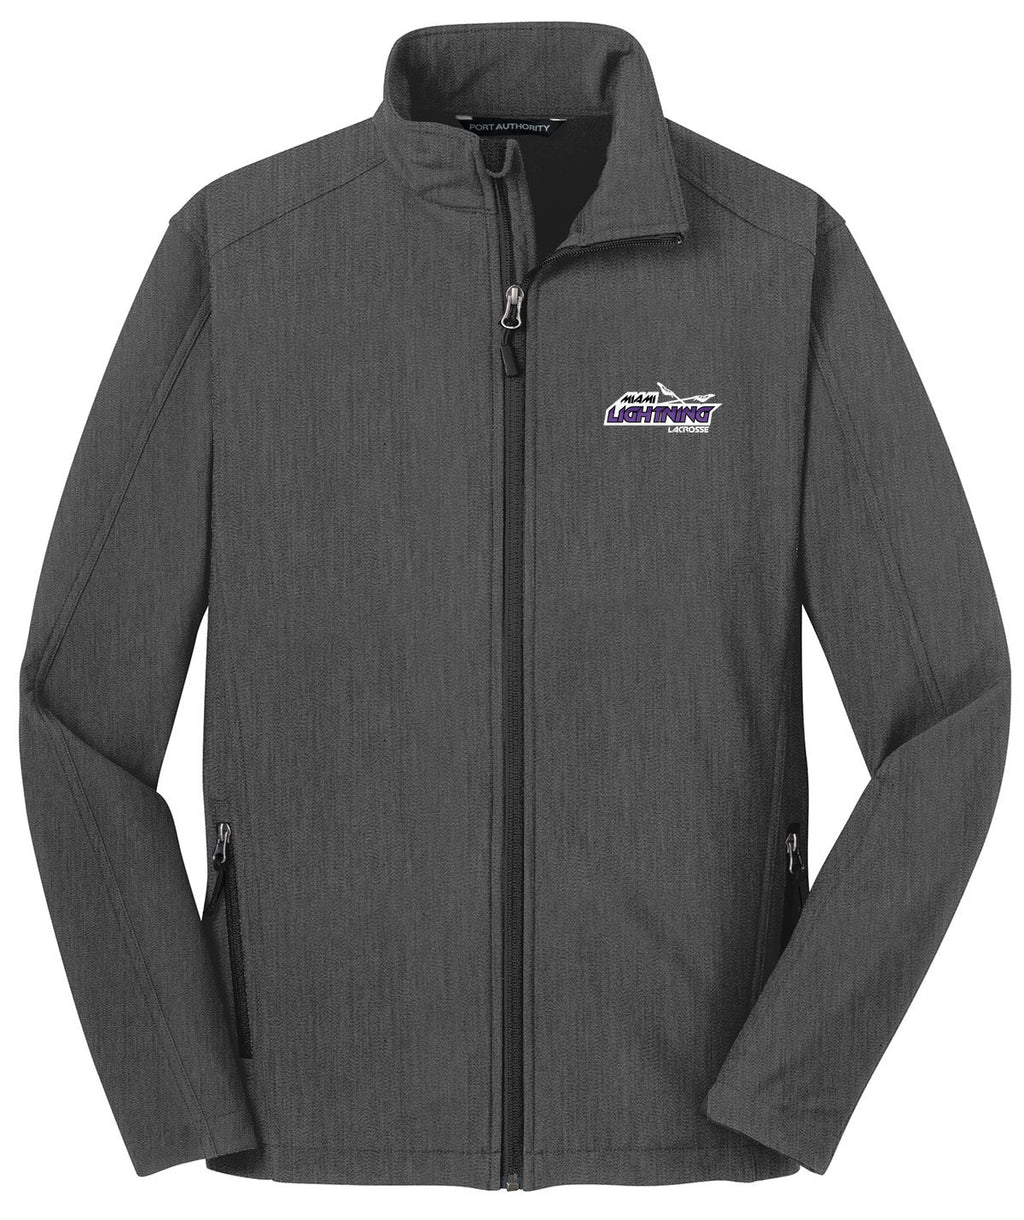 Miami Lightning Charcoal Soft Shell Jacket